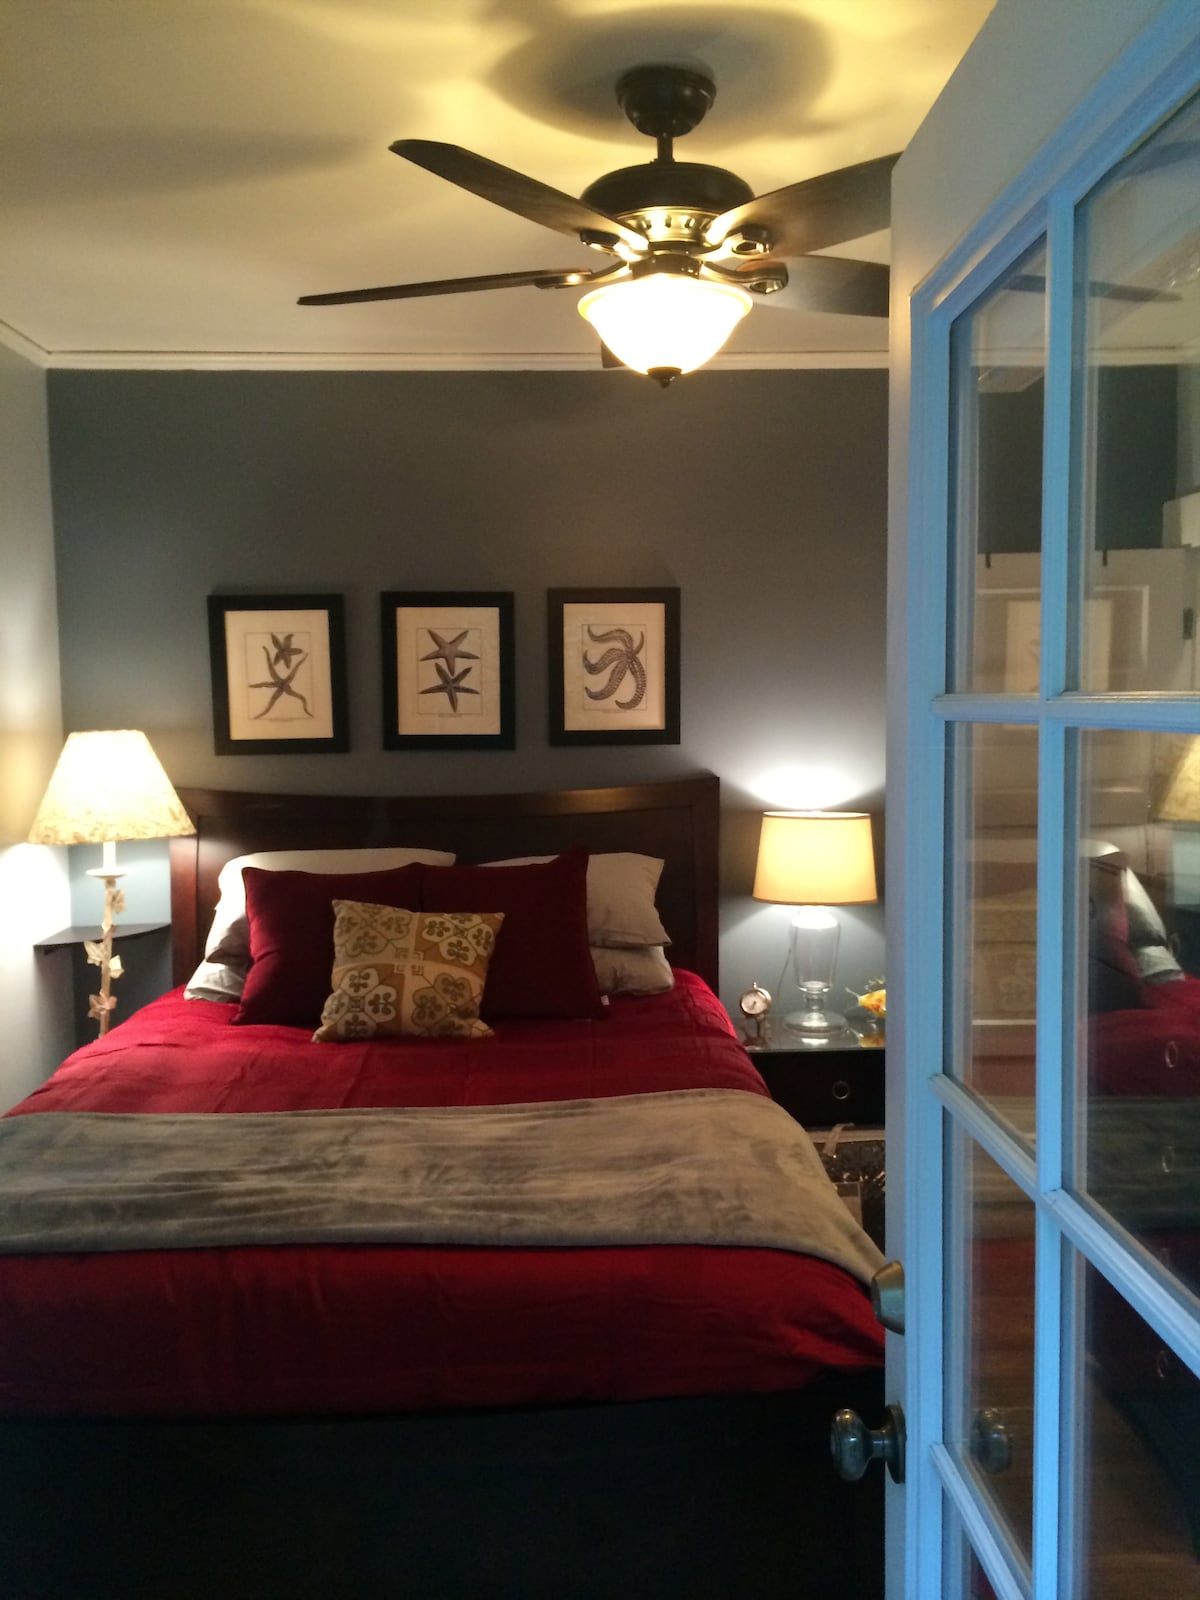 No sharing space. 100% private. Has own bathroom and exterior entry.Quiet and Cozy!